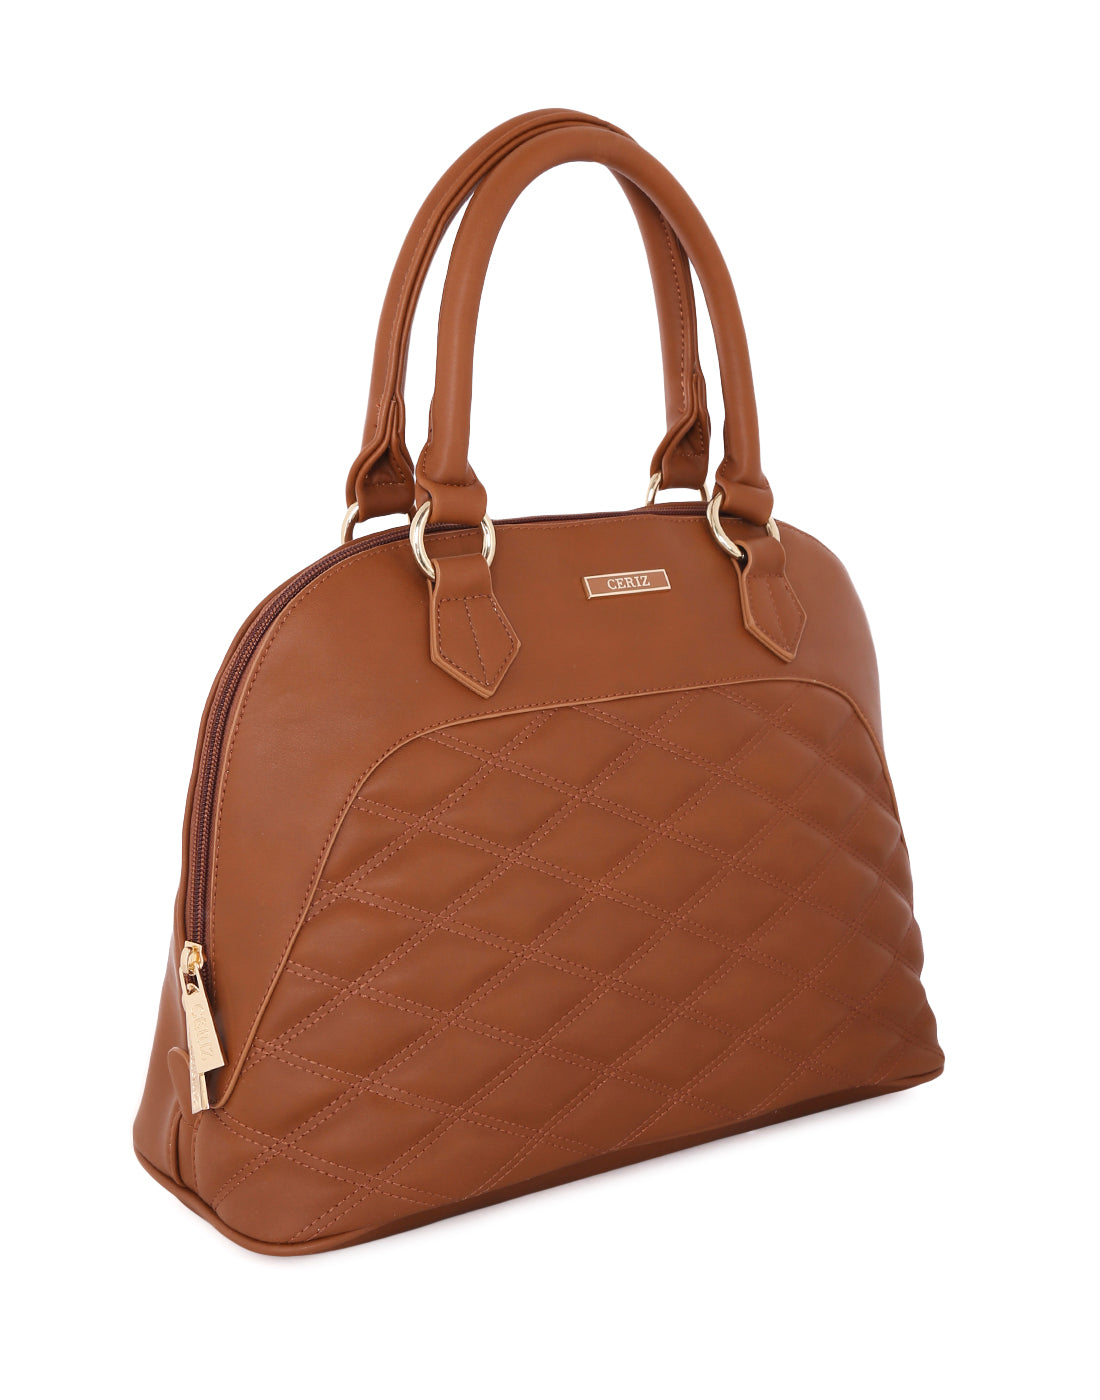 Aquila Tan quilted Handbag